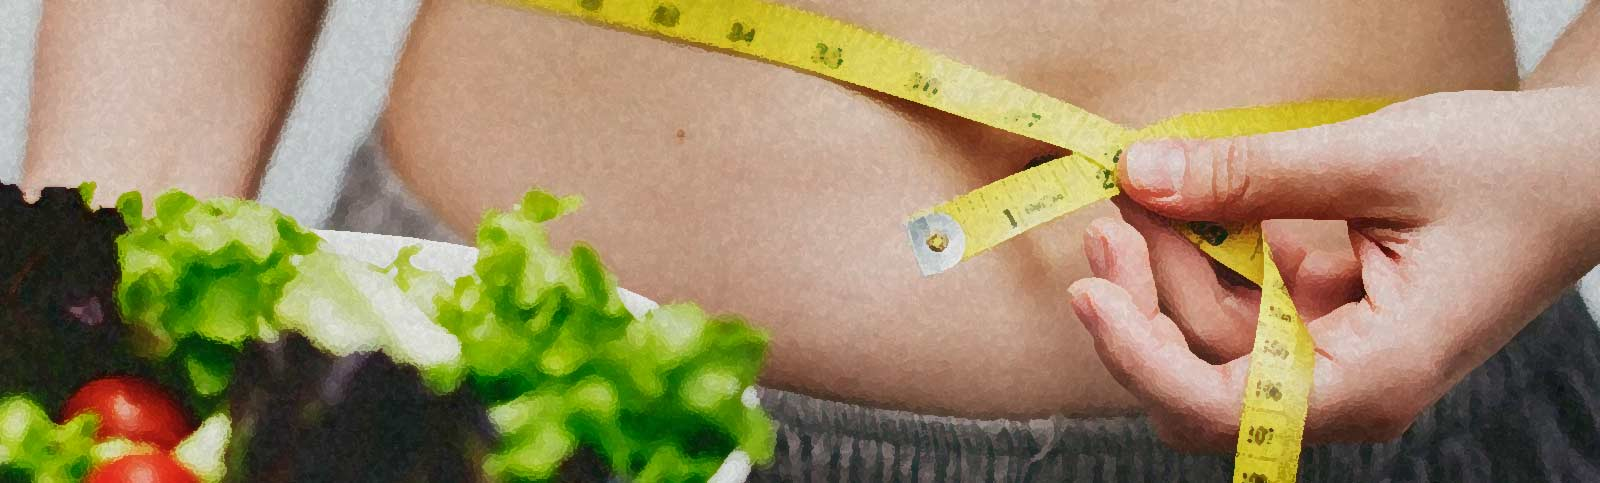 How to Lose Weight Sensibly and Healthily